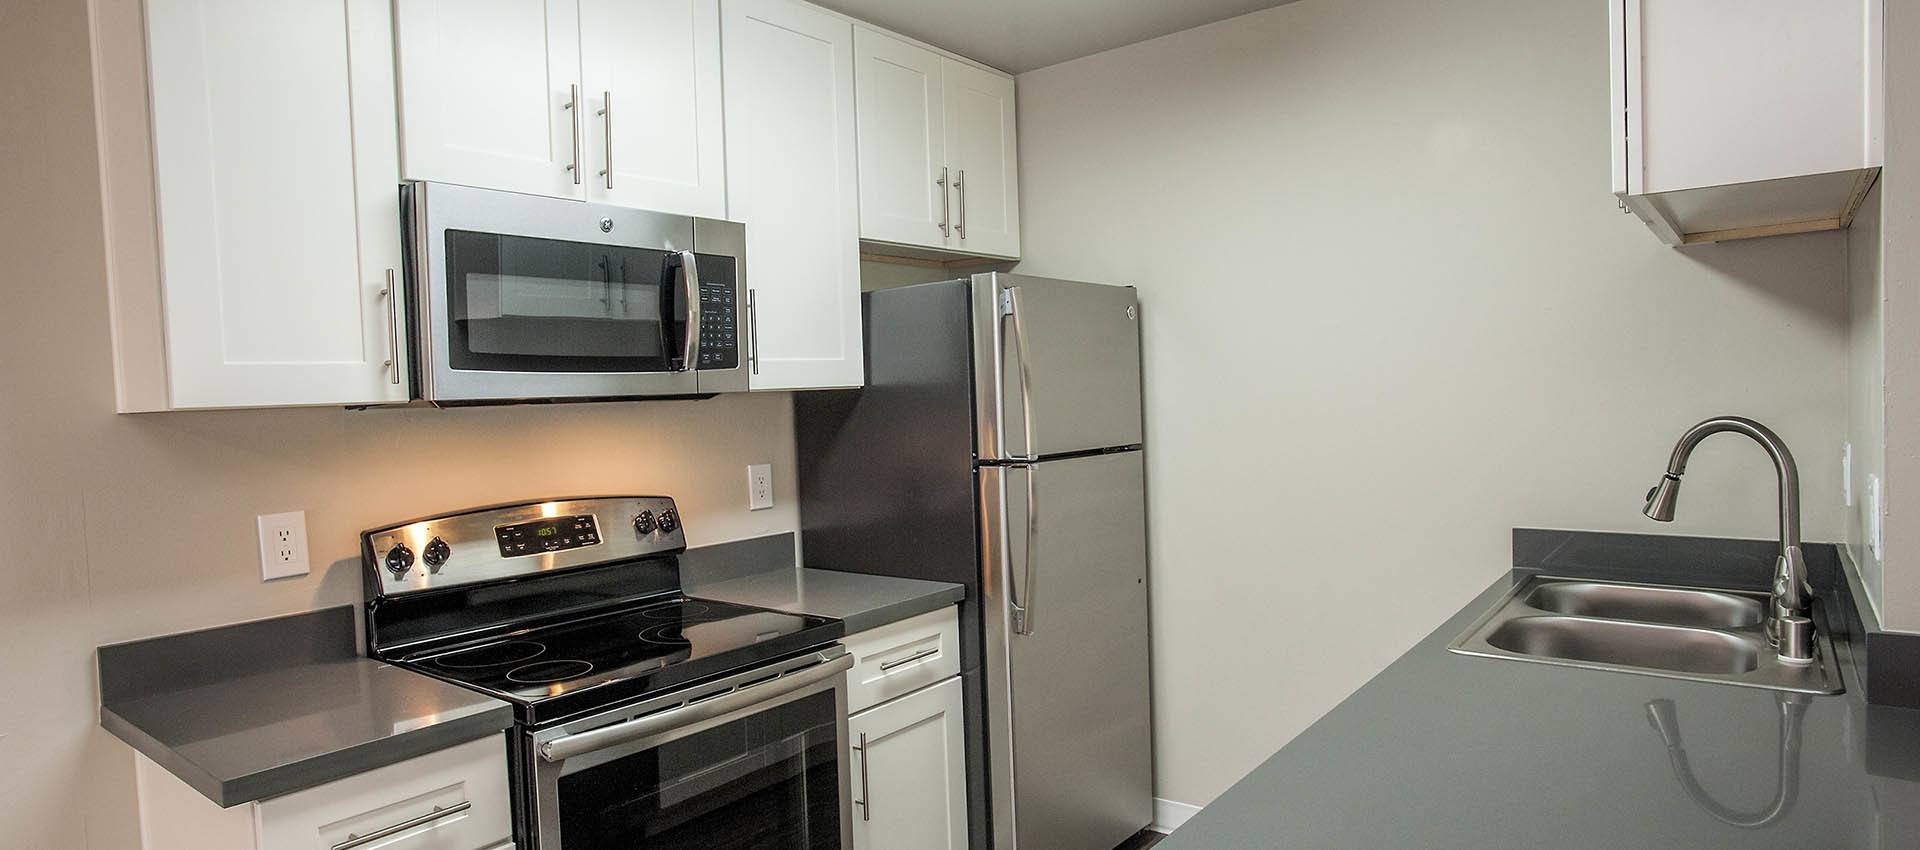 Kitchen at Ballena Village Apartment Homes in Alameda, CA